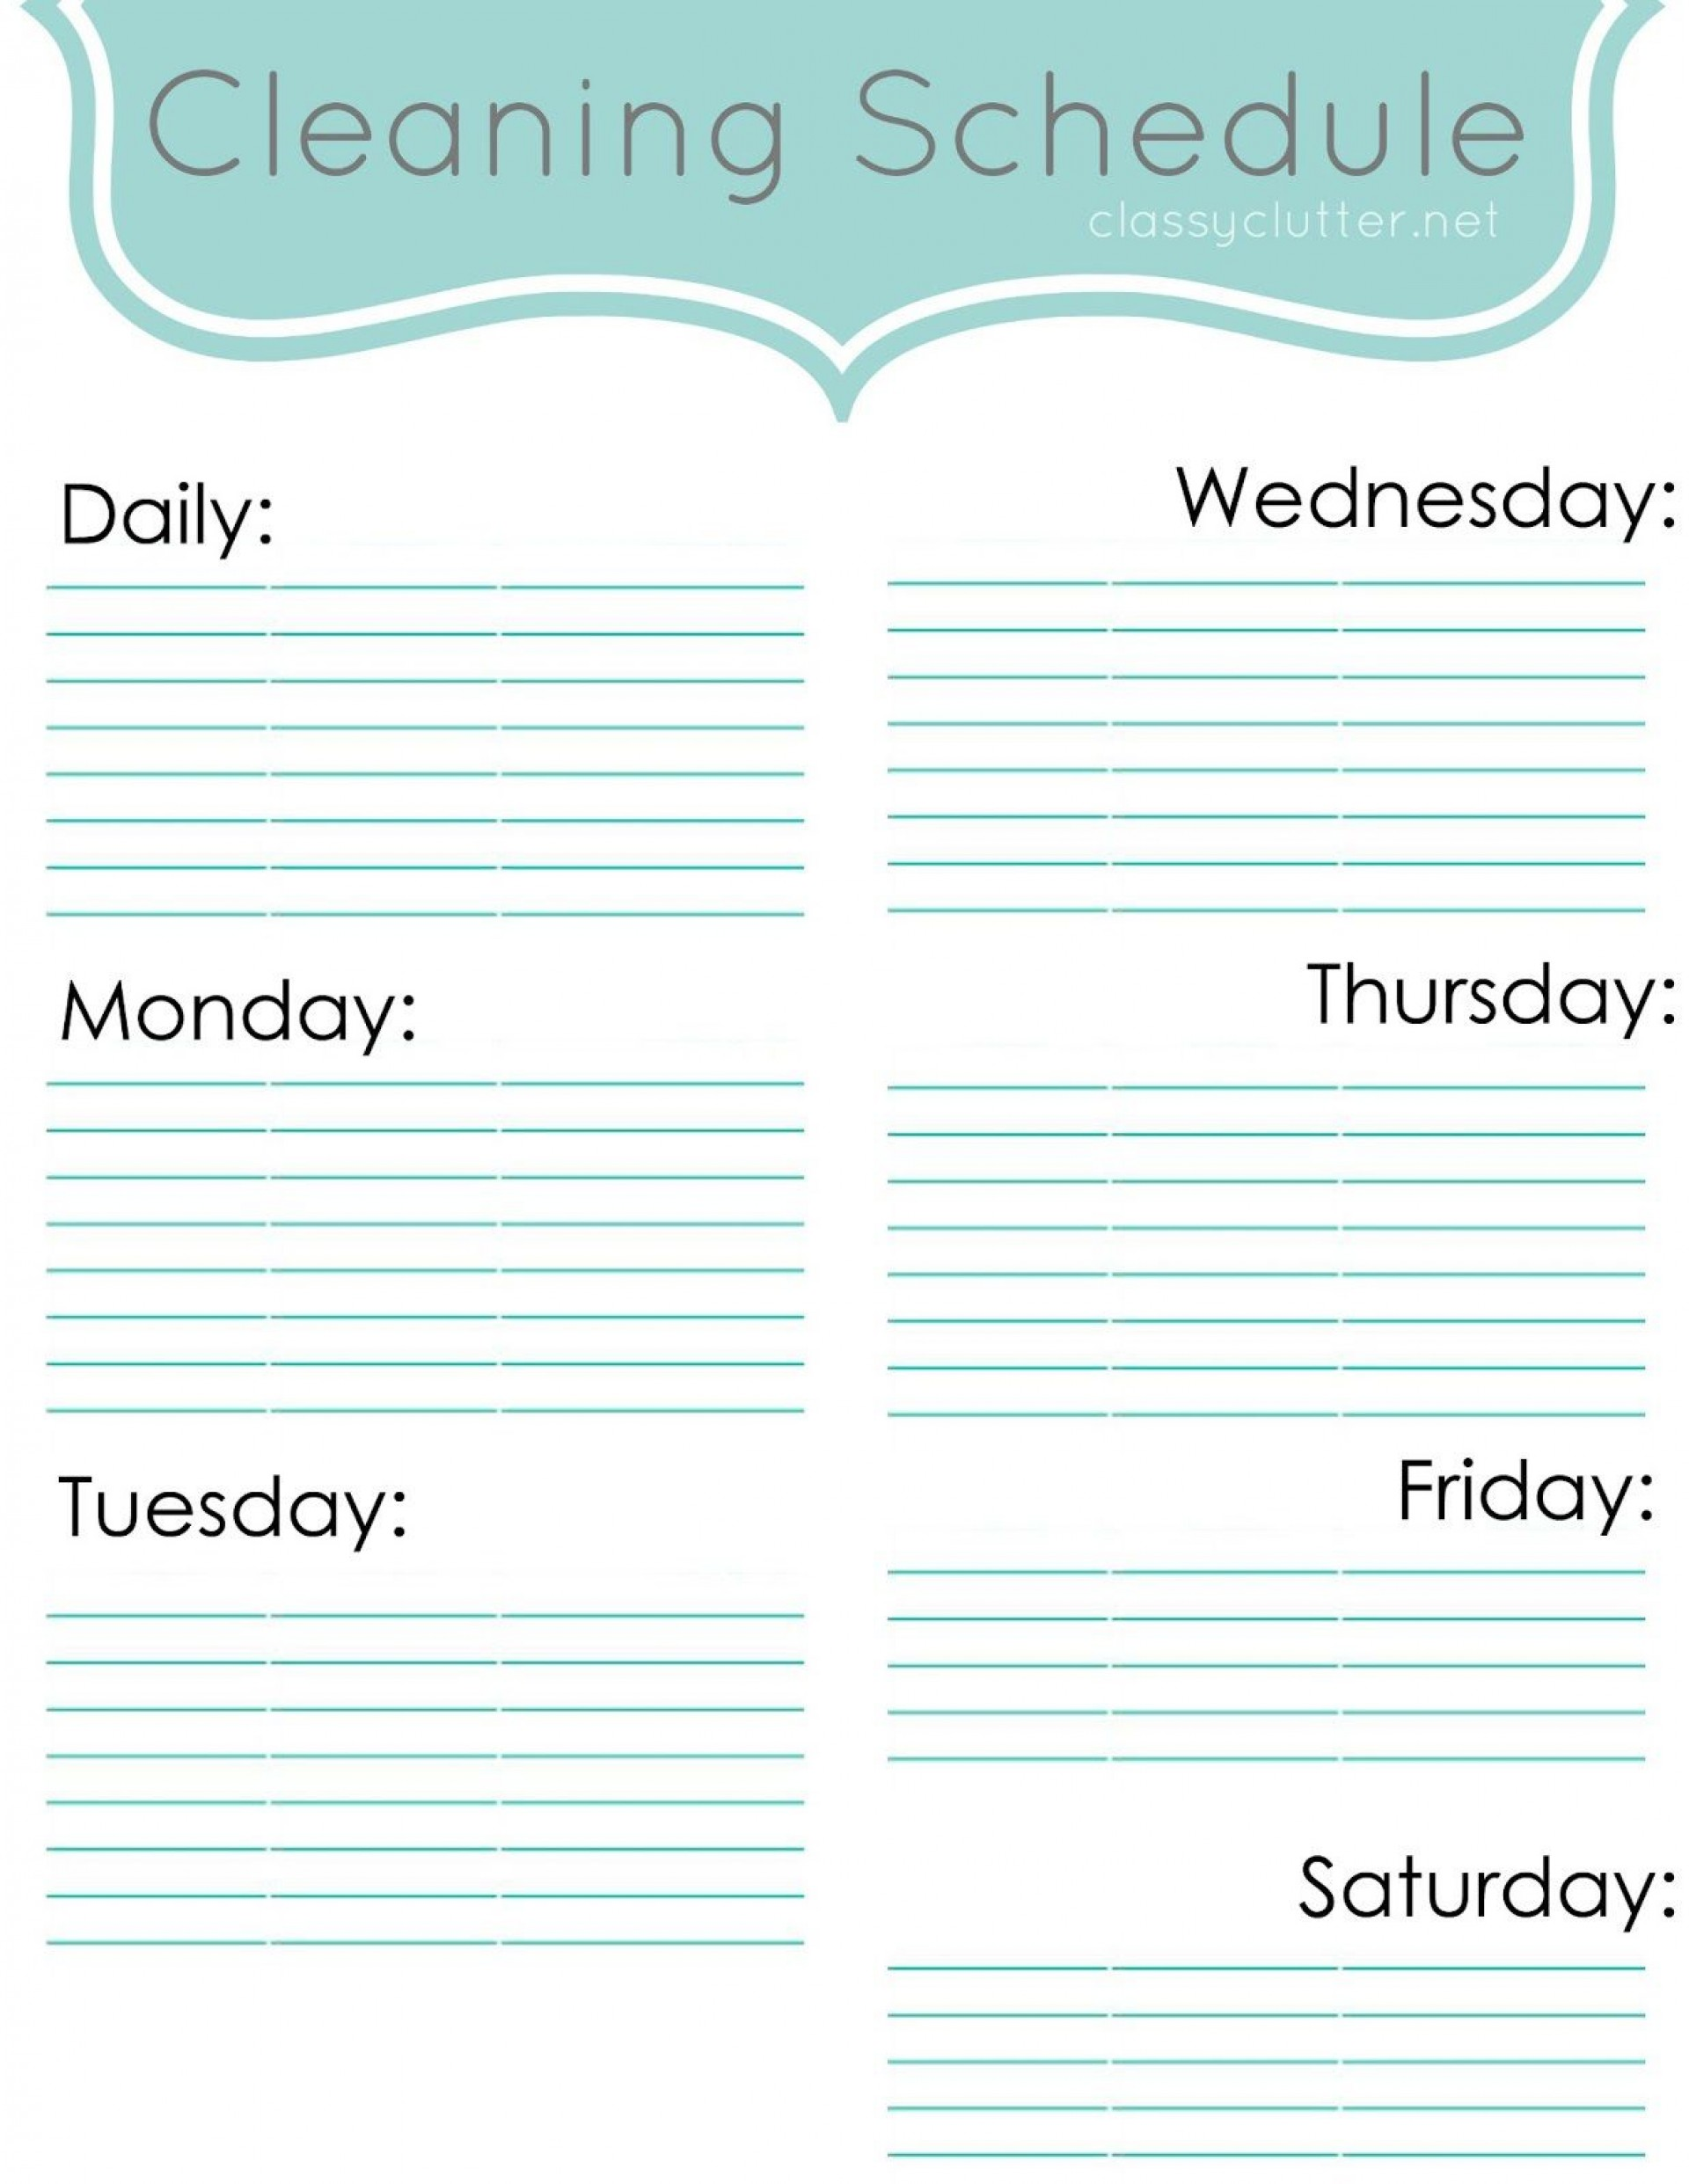 009 Striking Weekly Cleaning Schedule Format Highest Clarity  Template Free Sample1920